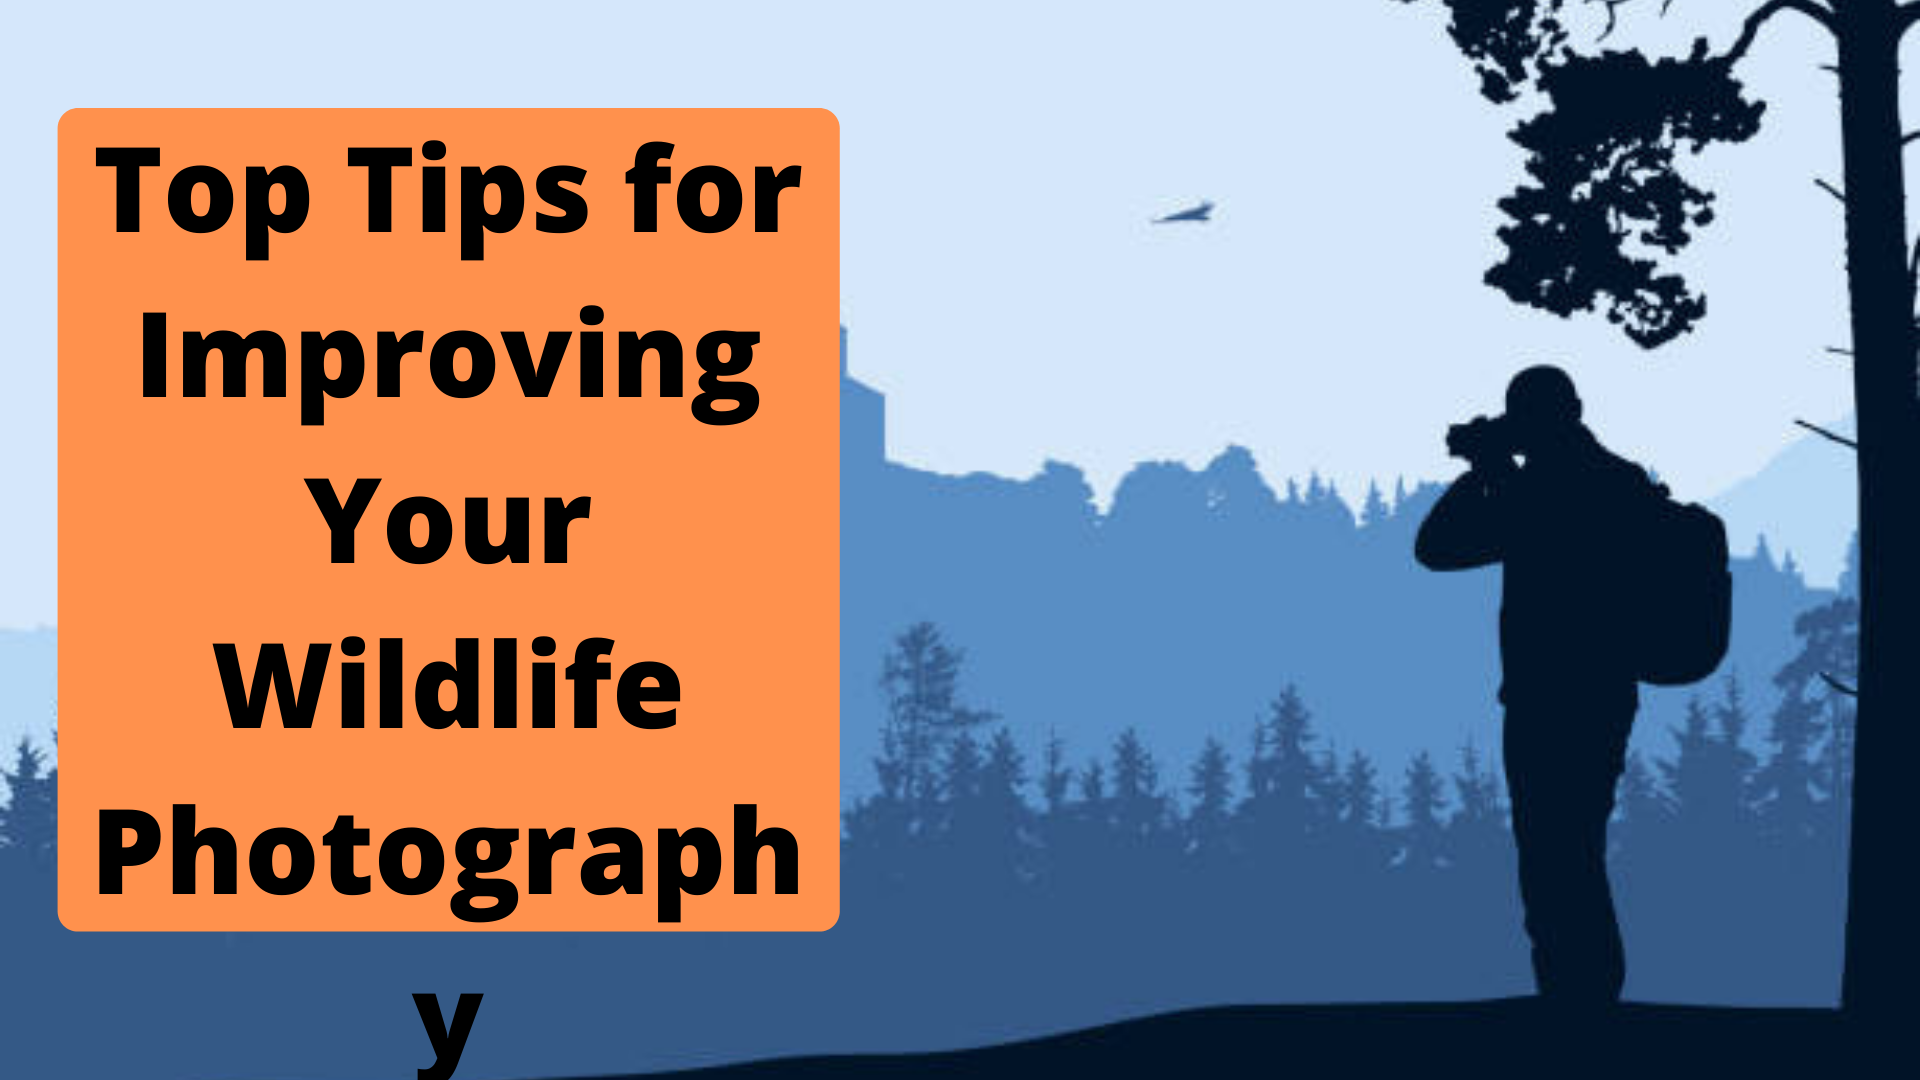 Top Tips for Improving Your Wildlife Photography